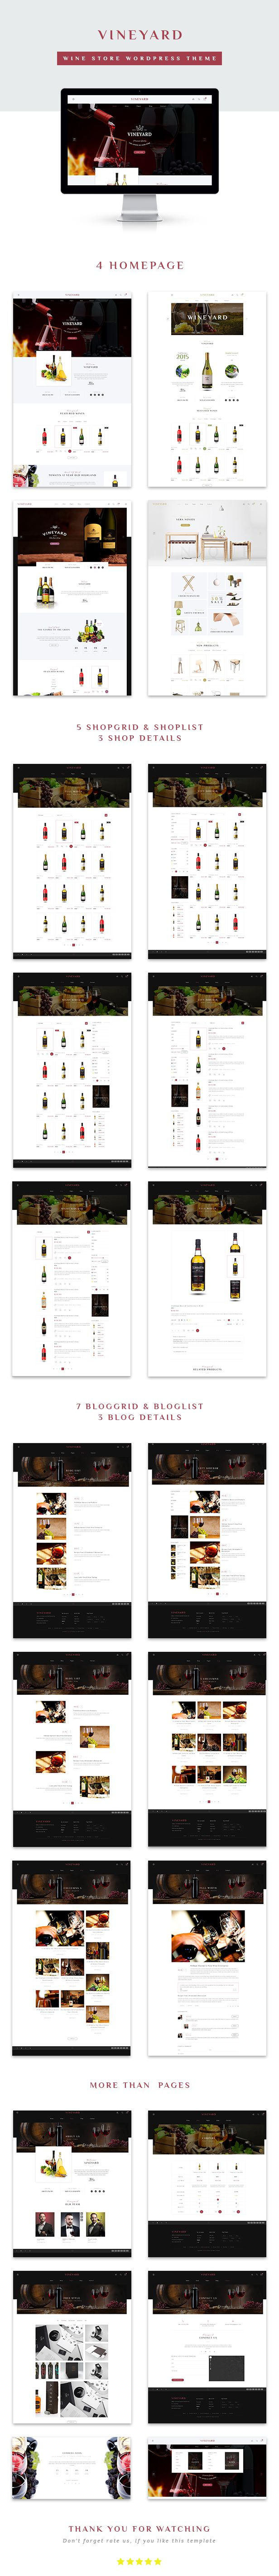 Wine Store WooCommerce WordPress Theme